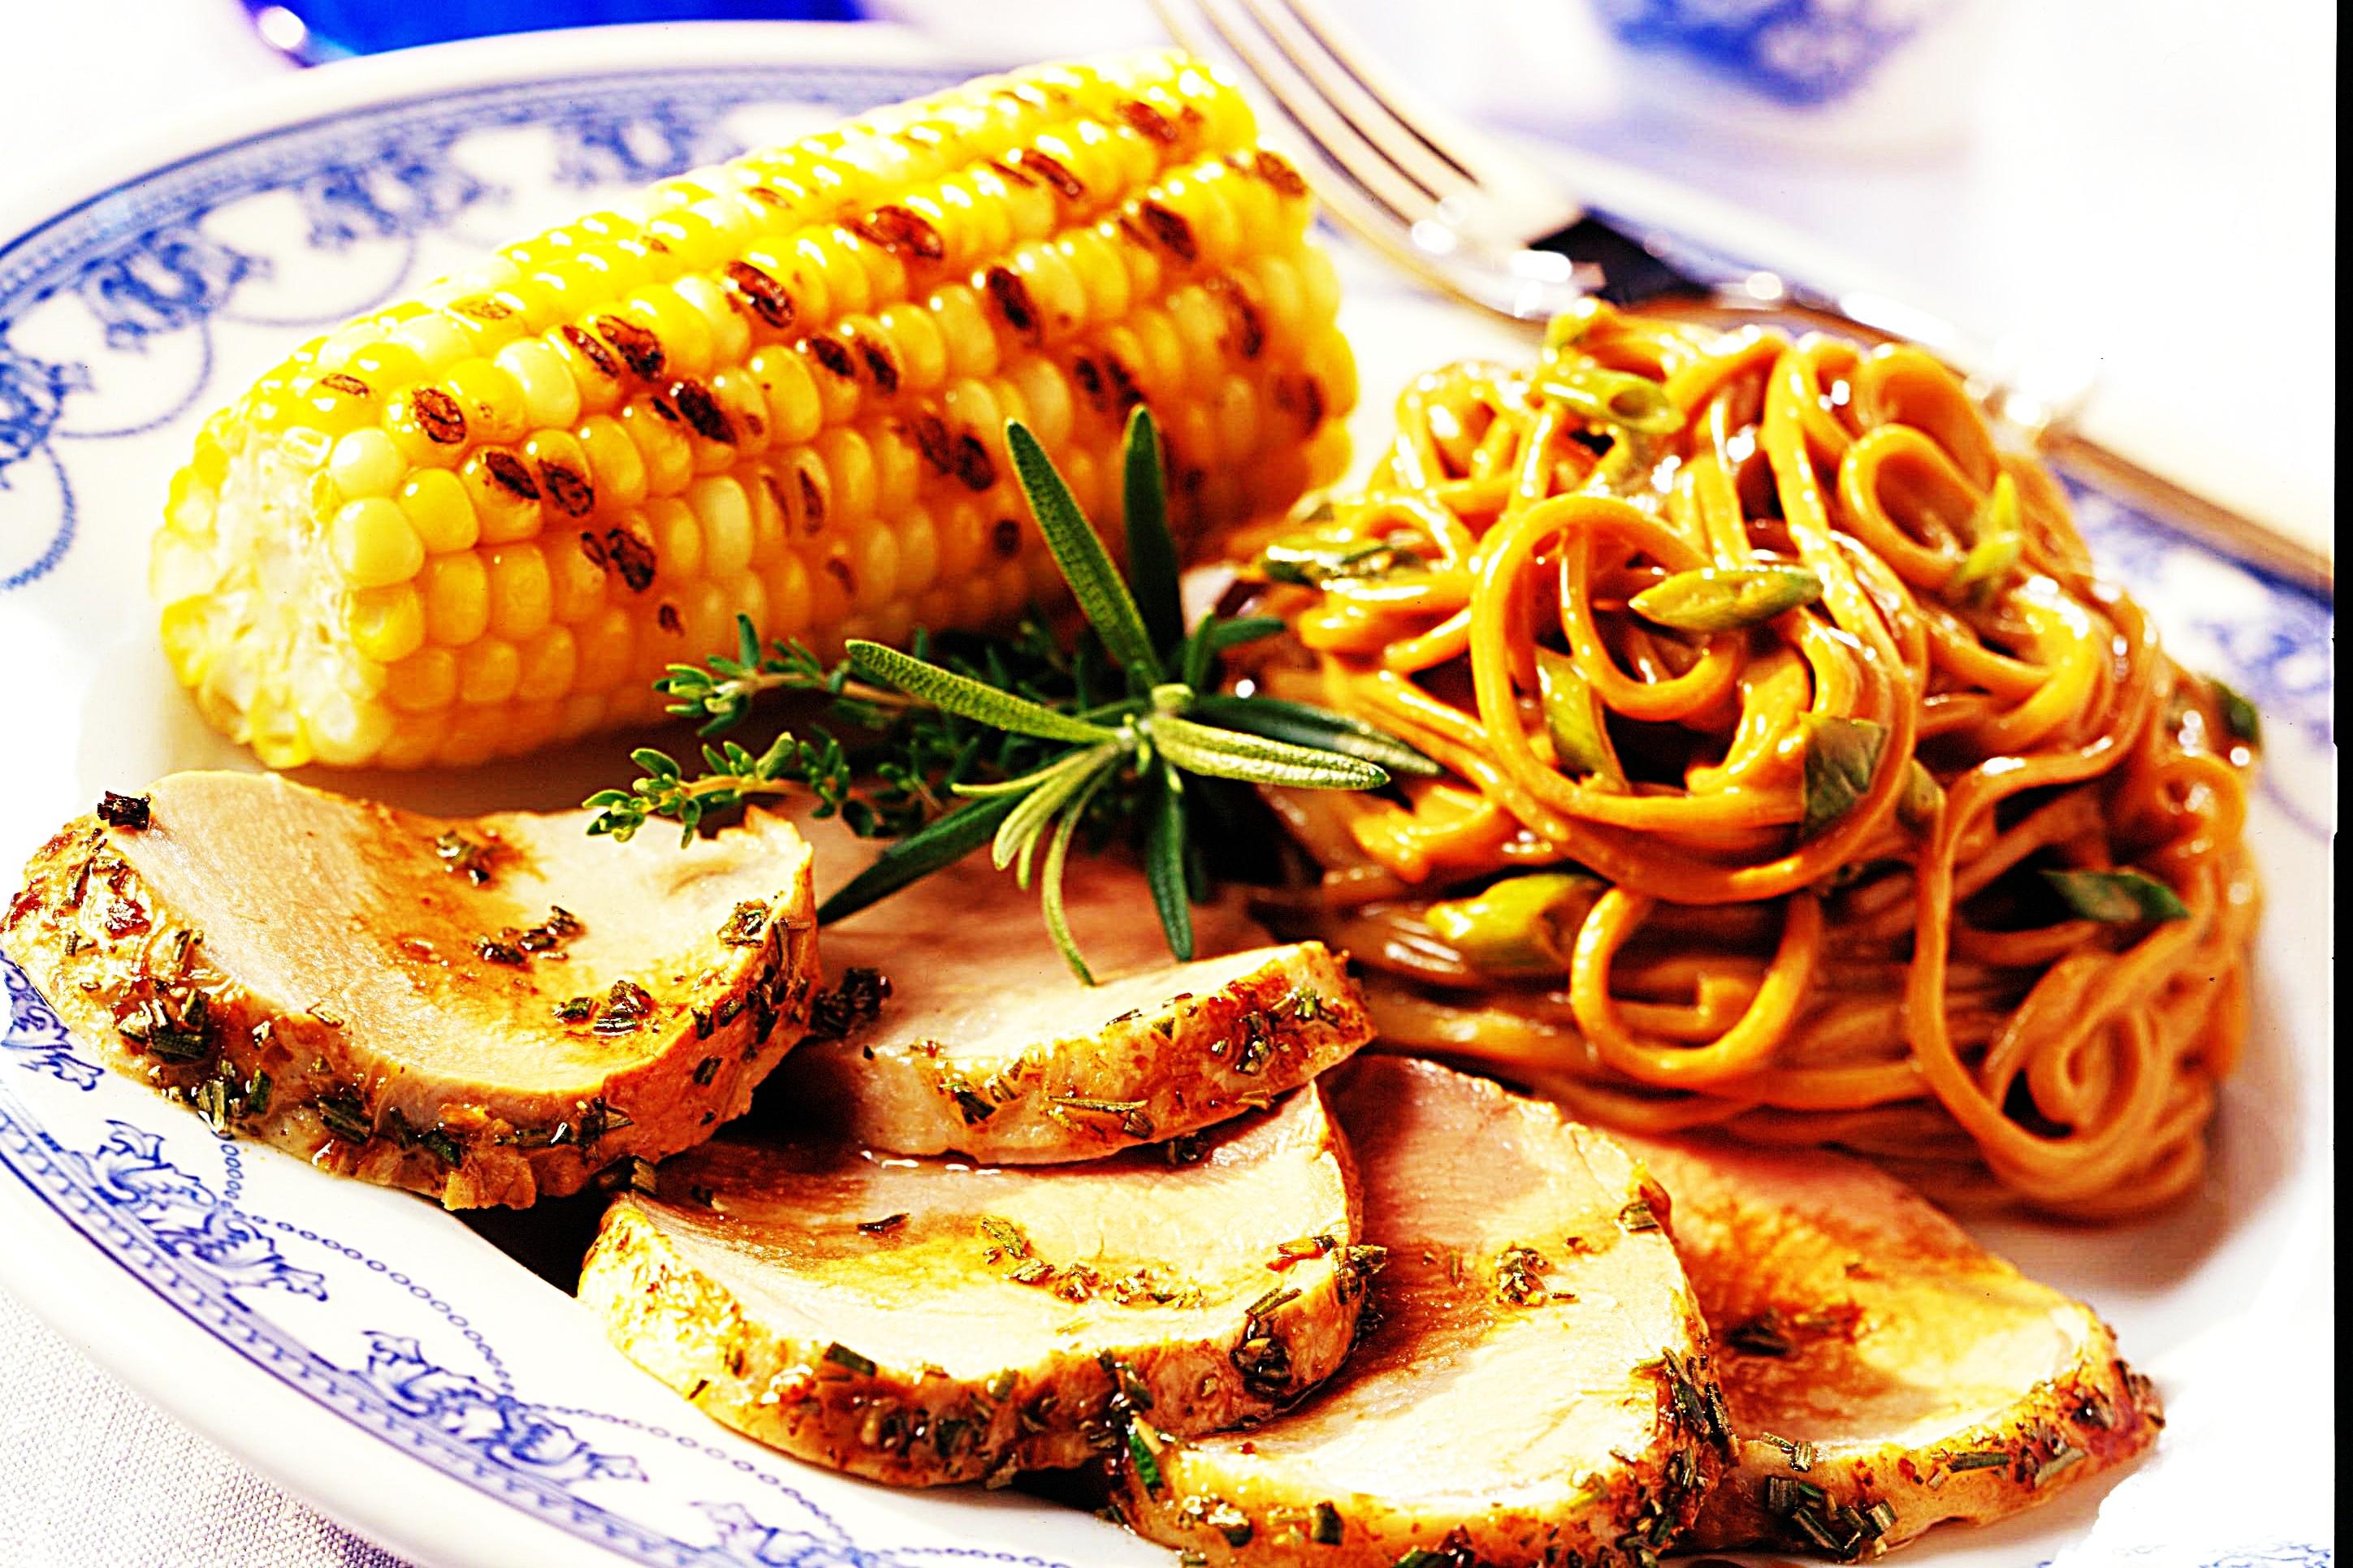 Stupid-Easy Recipe for Grilled Pork Tenderloin with Balsamic Vinegar (#1 Top-Rated)